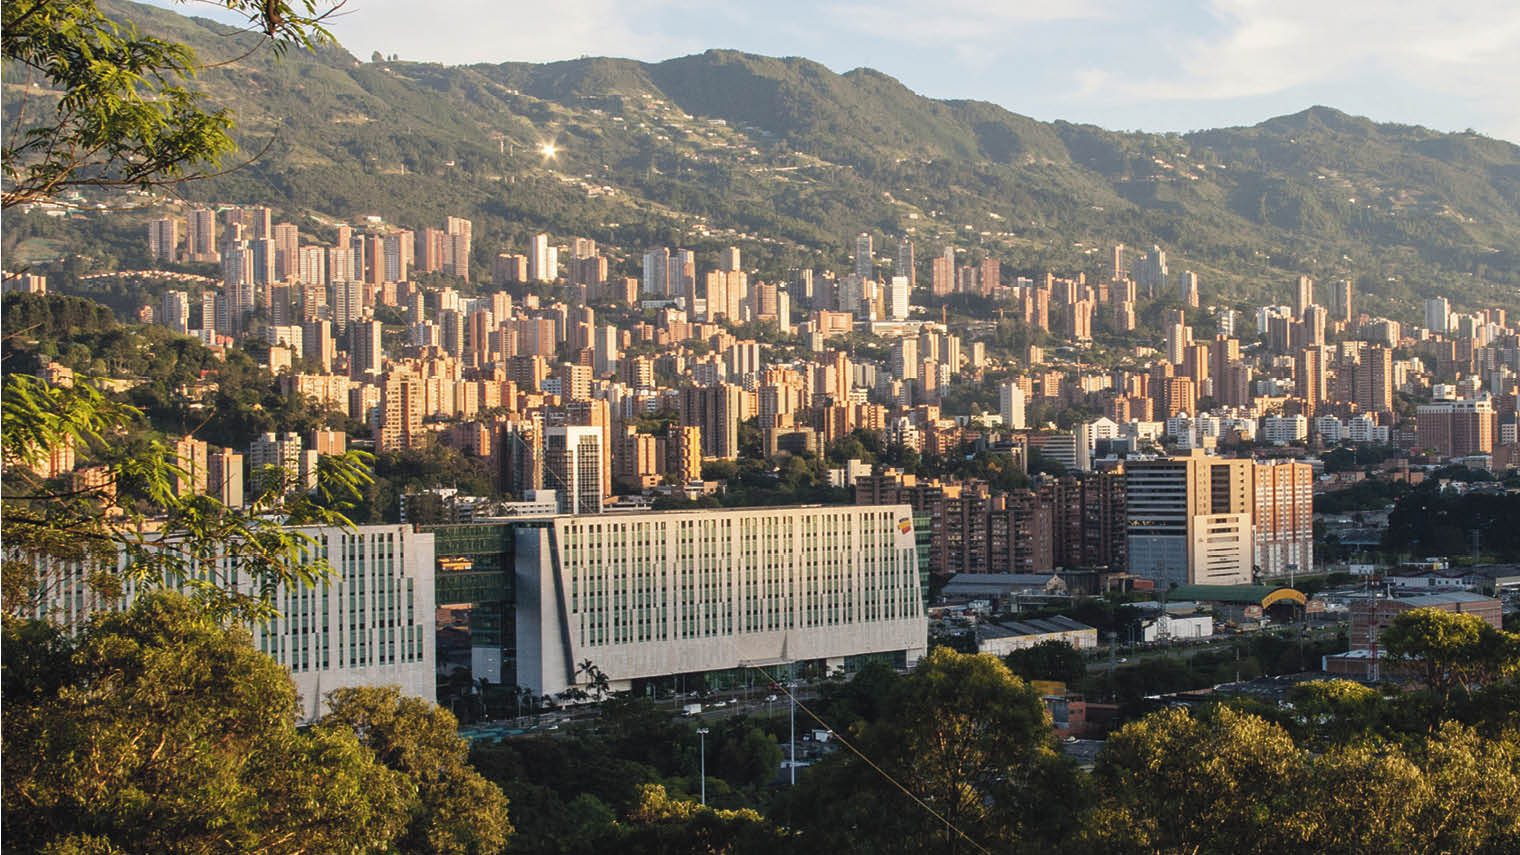 Bancolombia's headquarters in the centre of Medellin, Colombia